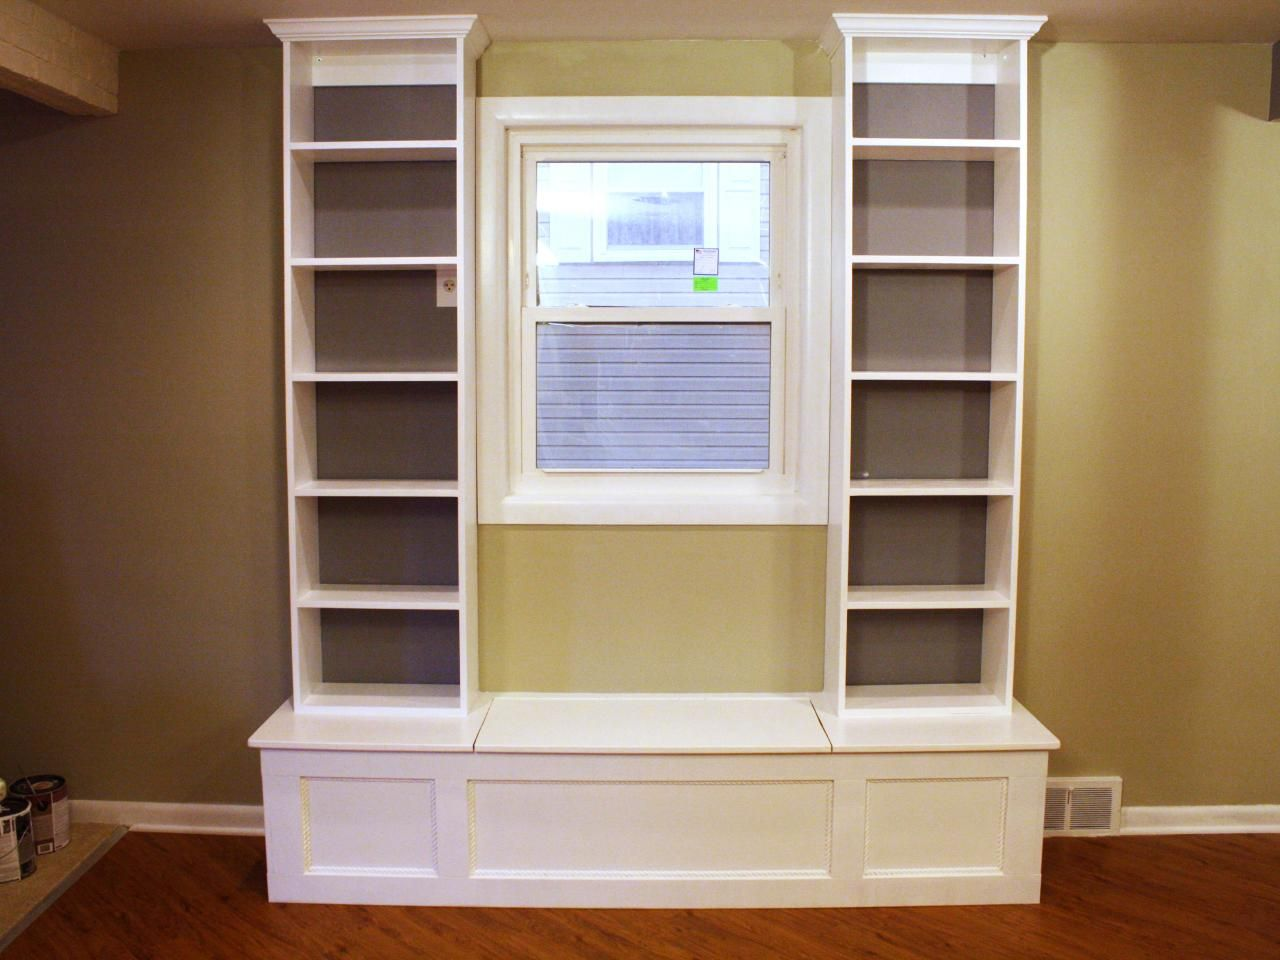 Window Seat Bench Ideas Part - 16: Build A Window Seat With Side Shelving For Extra Storage Space With These  Simple Step-